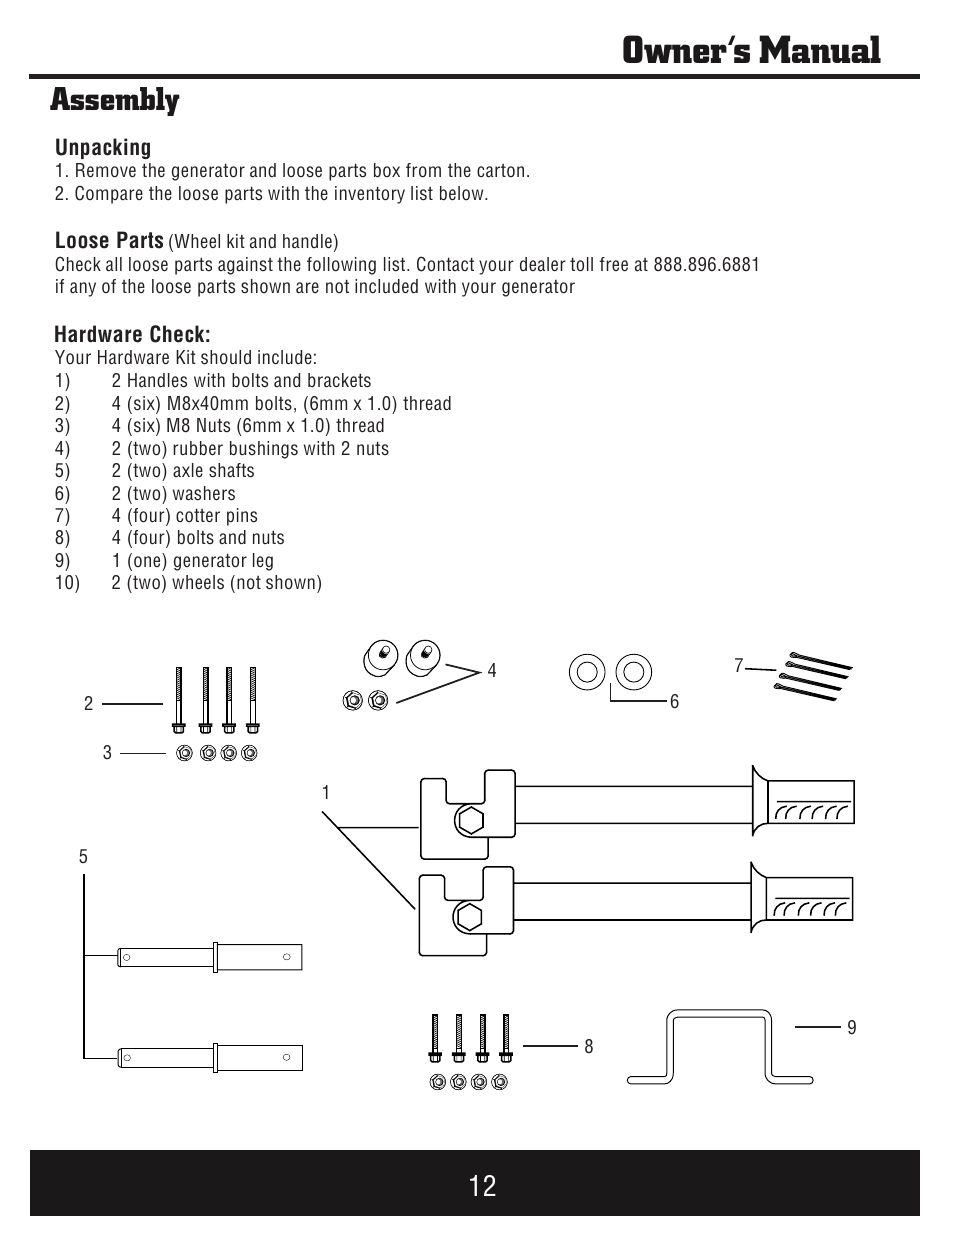 owner s manual assembly steele products sp gg900e user manual rh manualsdir com Manuals for Navepoint 15U Assembly Assembly Instruction Manuals